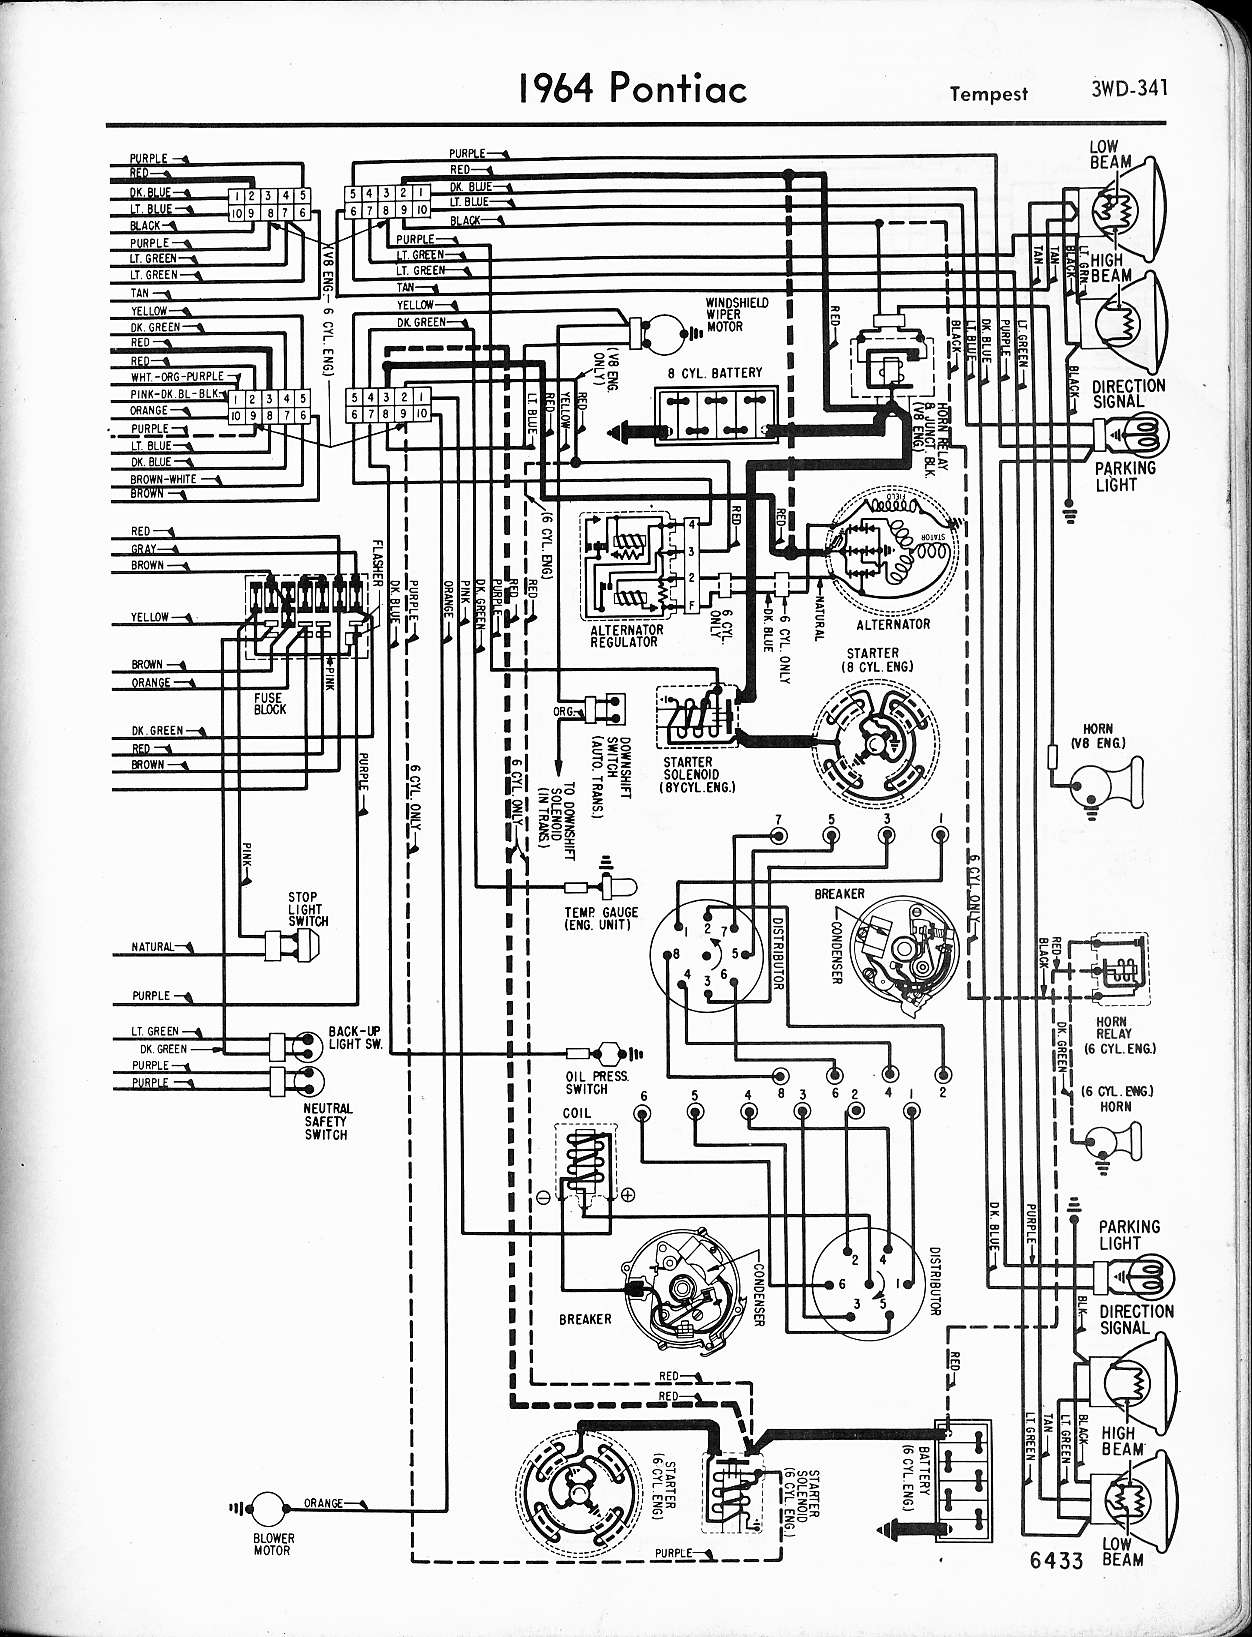 1964 gto wiring diagram online schematic diagram u2022 rh holyoak co 1965 gto wiring harness 1963